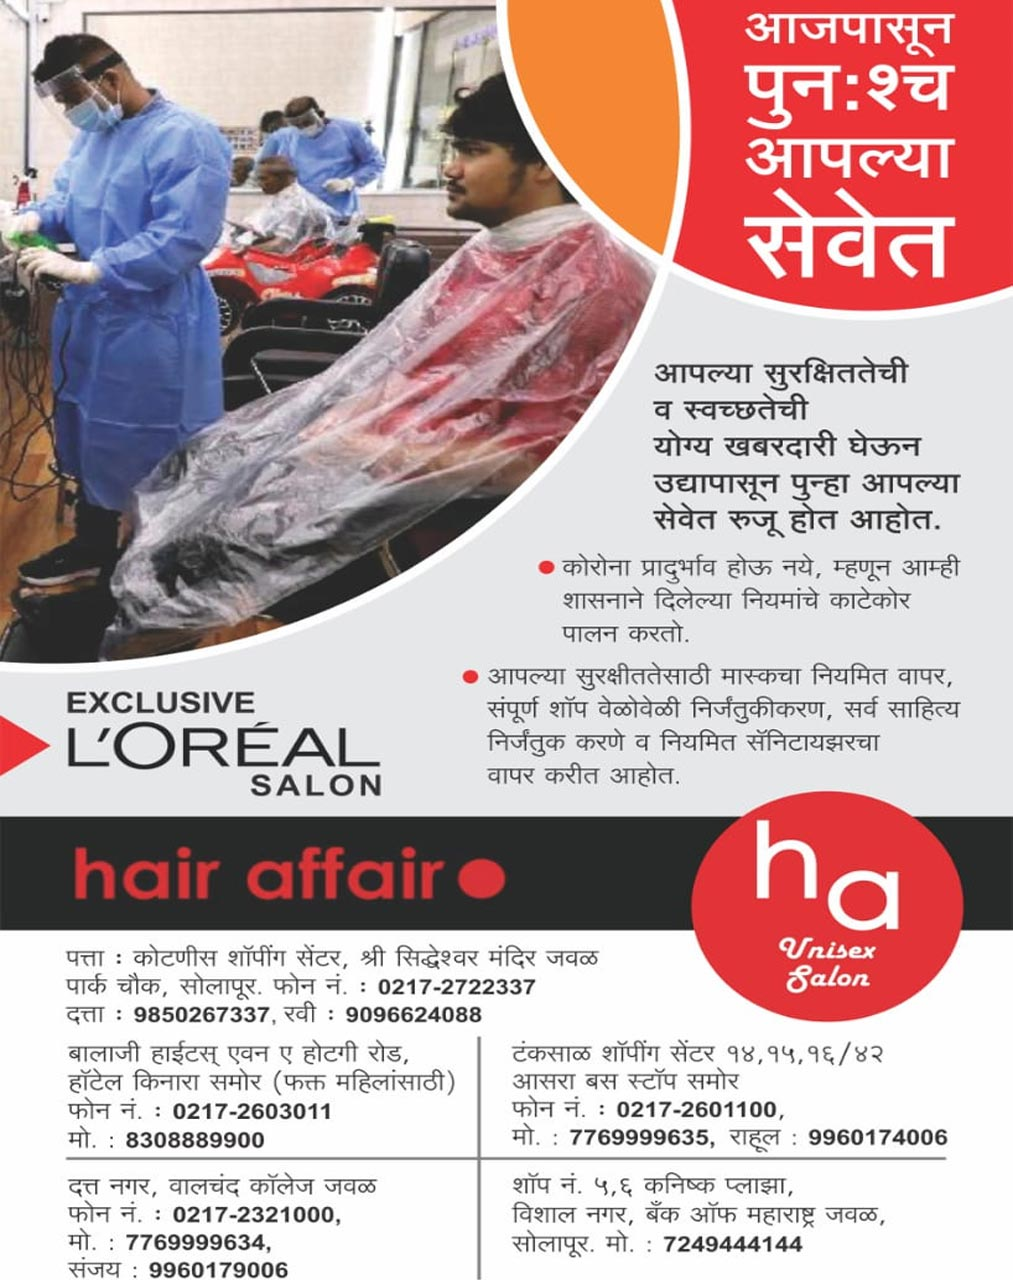 HAIR AFFAIR UNISEX SALOON